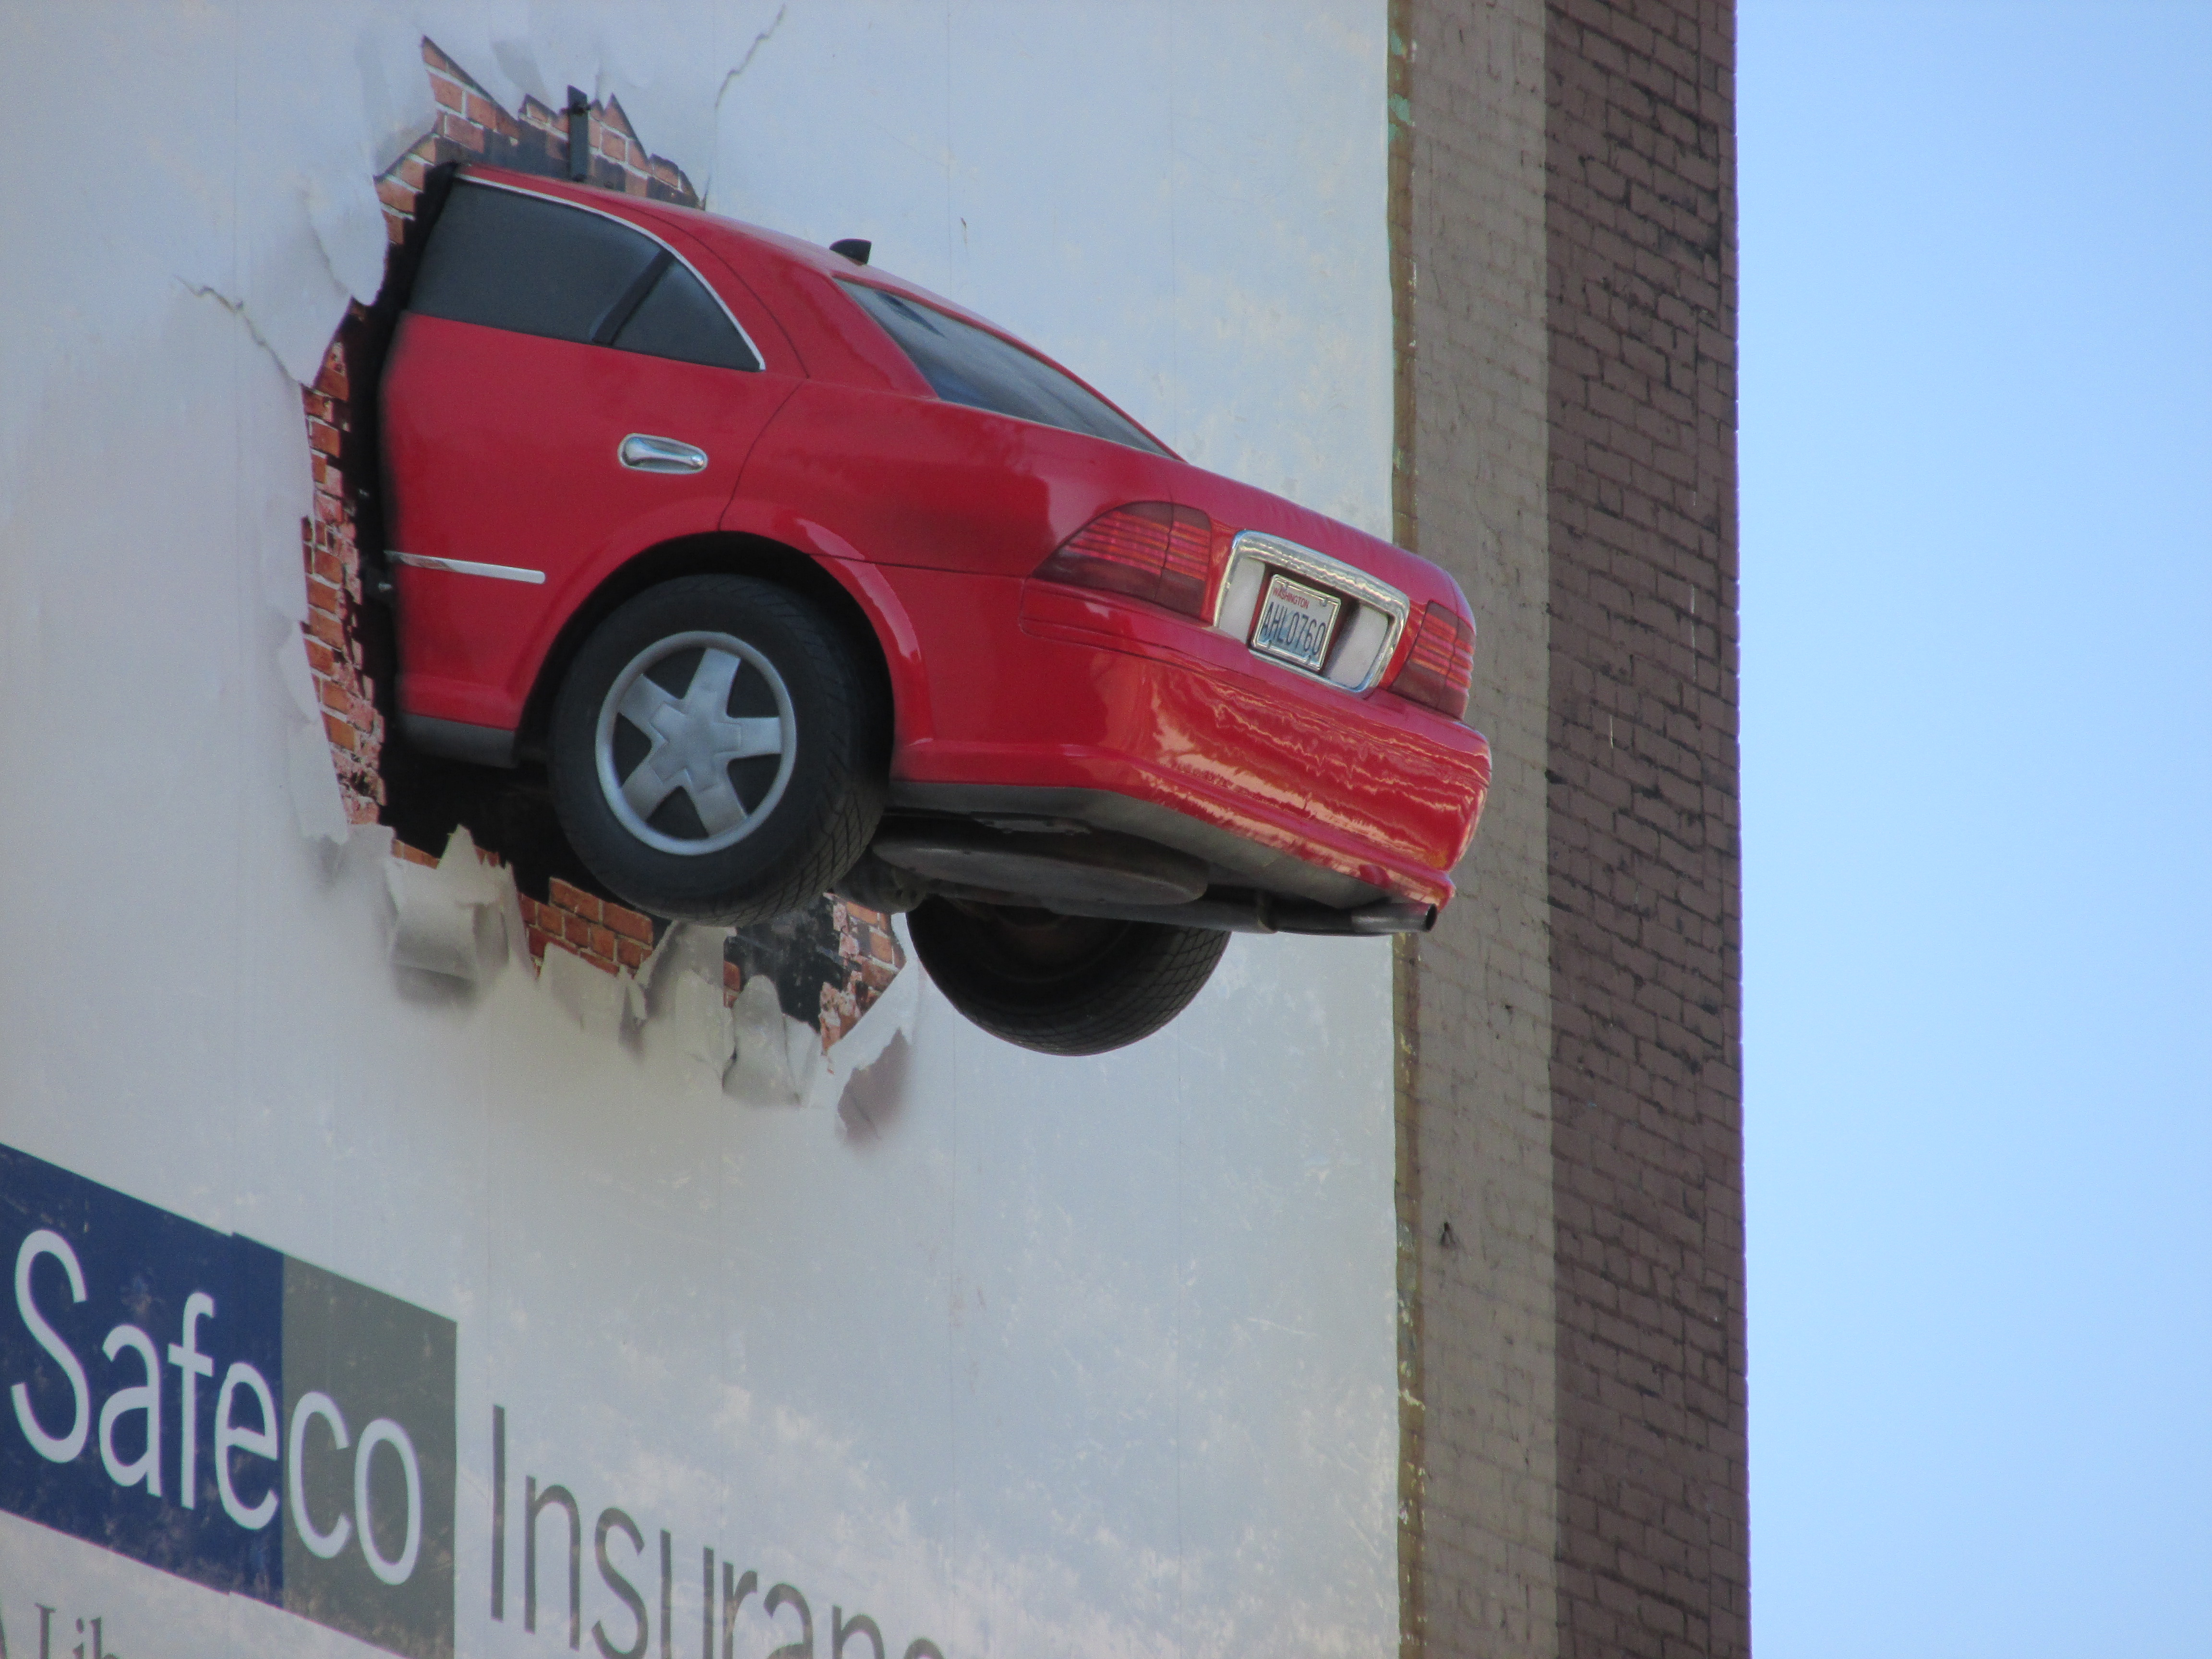 Safeco Car Insurance: Safeco Insurance, Things To Know